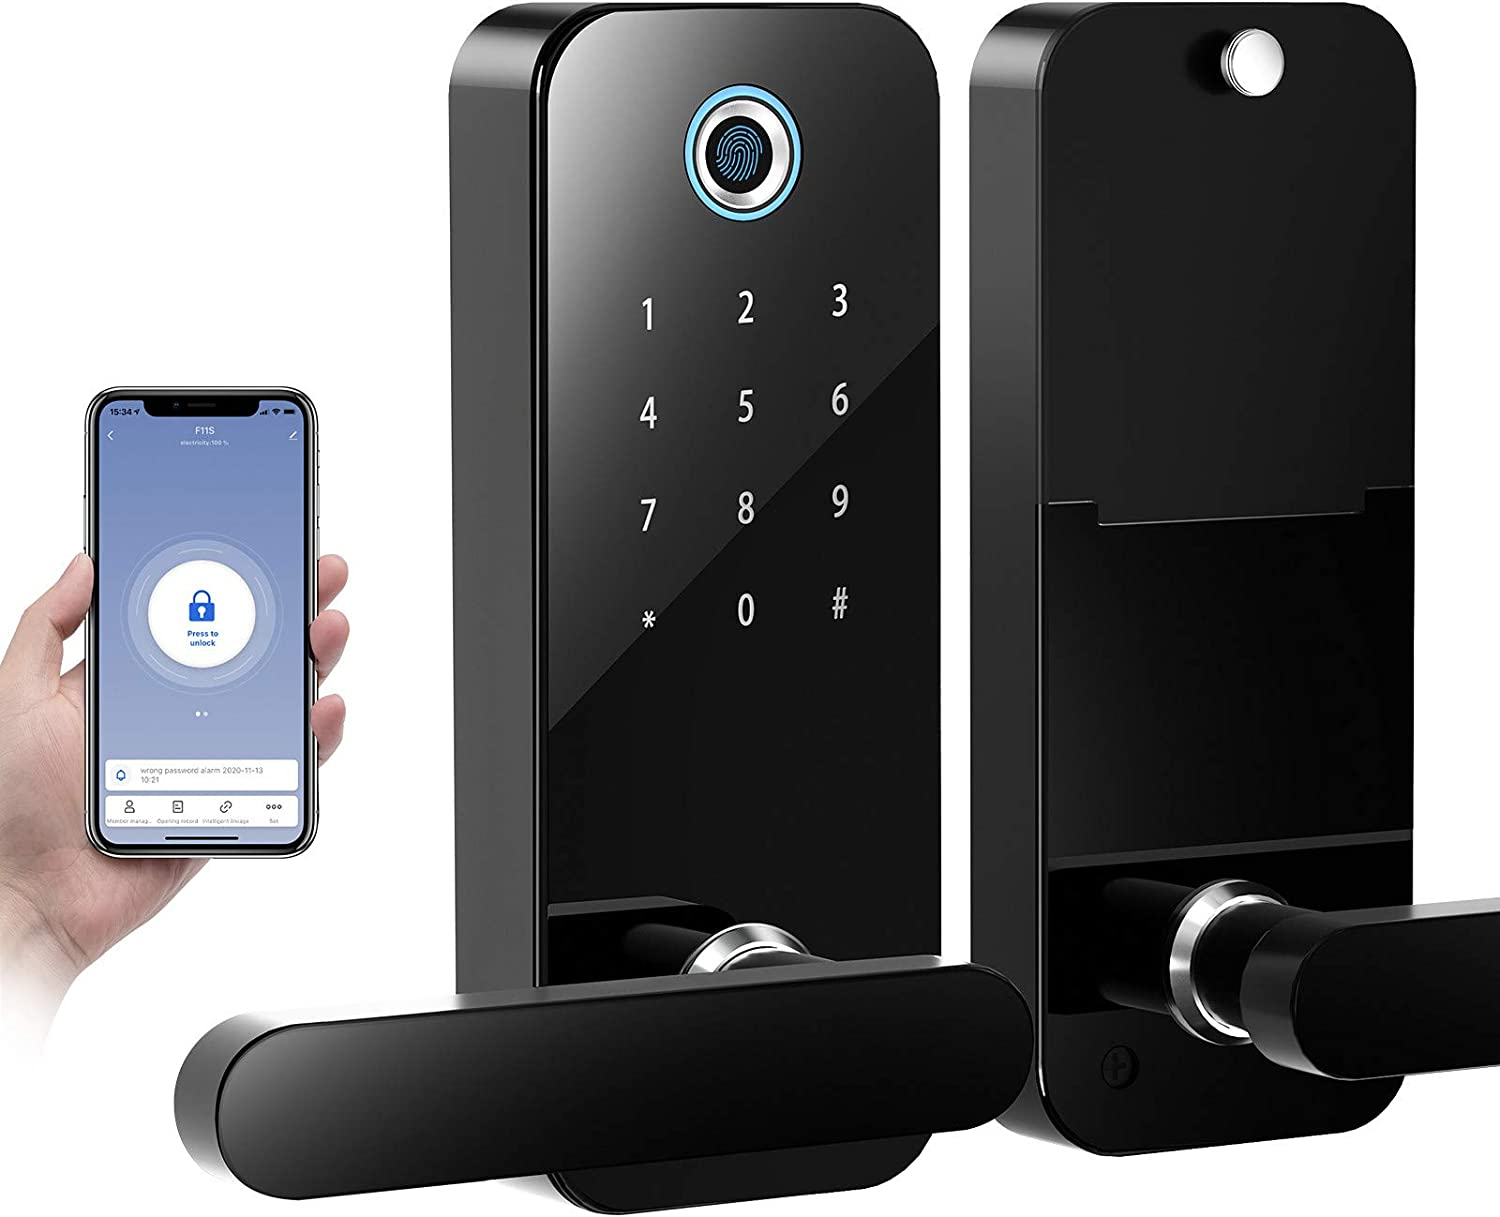 COOLOUS Fingerprint Lock with Bluetooth Tuya Smart App,Stainless Steel Door Lock Touchscreen Keypad Keyless Smart Lock Electronic Entry Lock with Reversible Lever Locking for Home Office Door